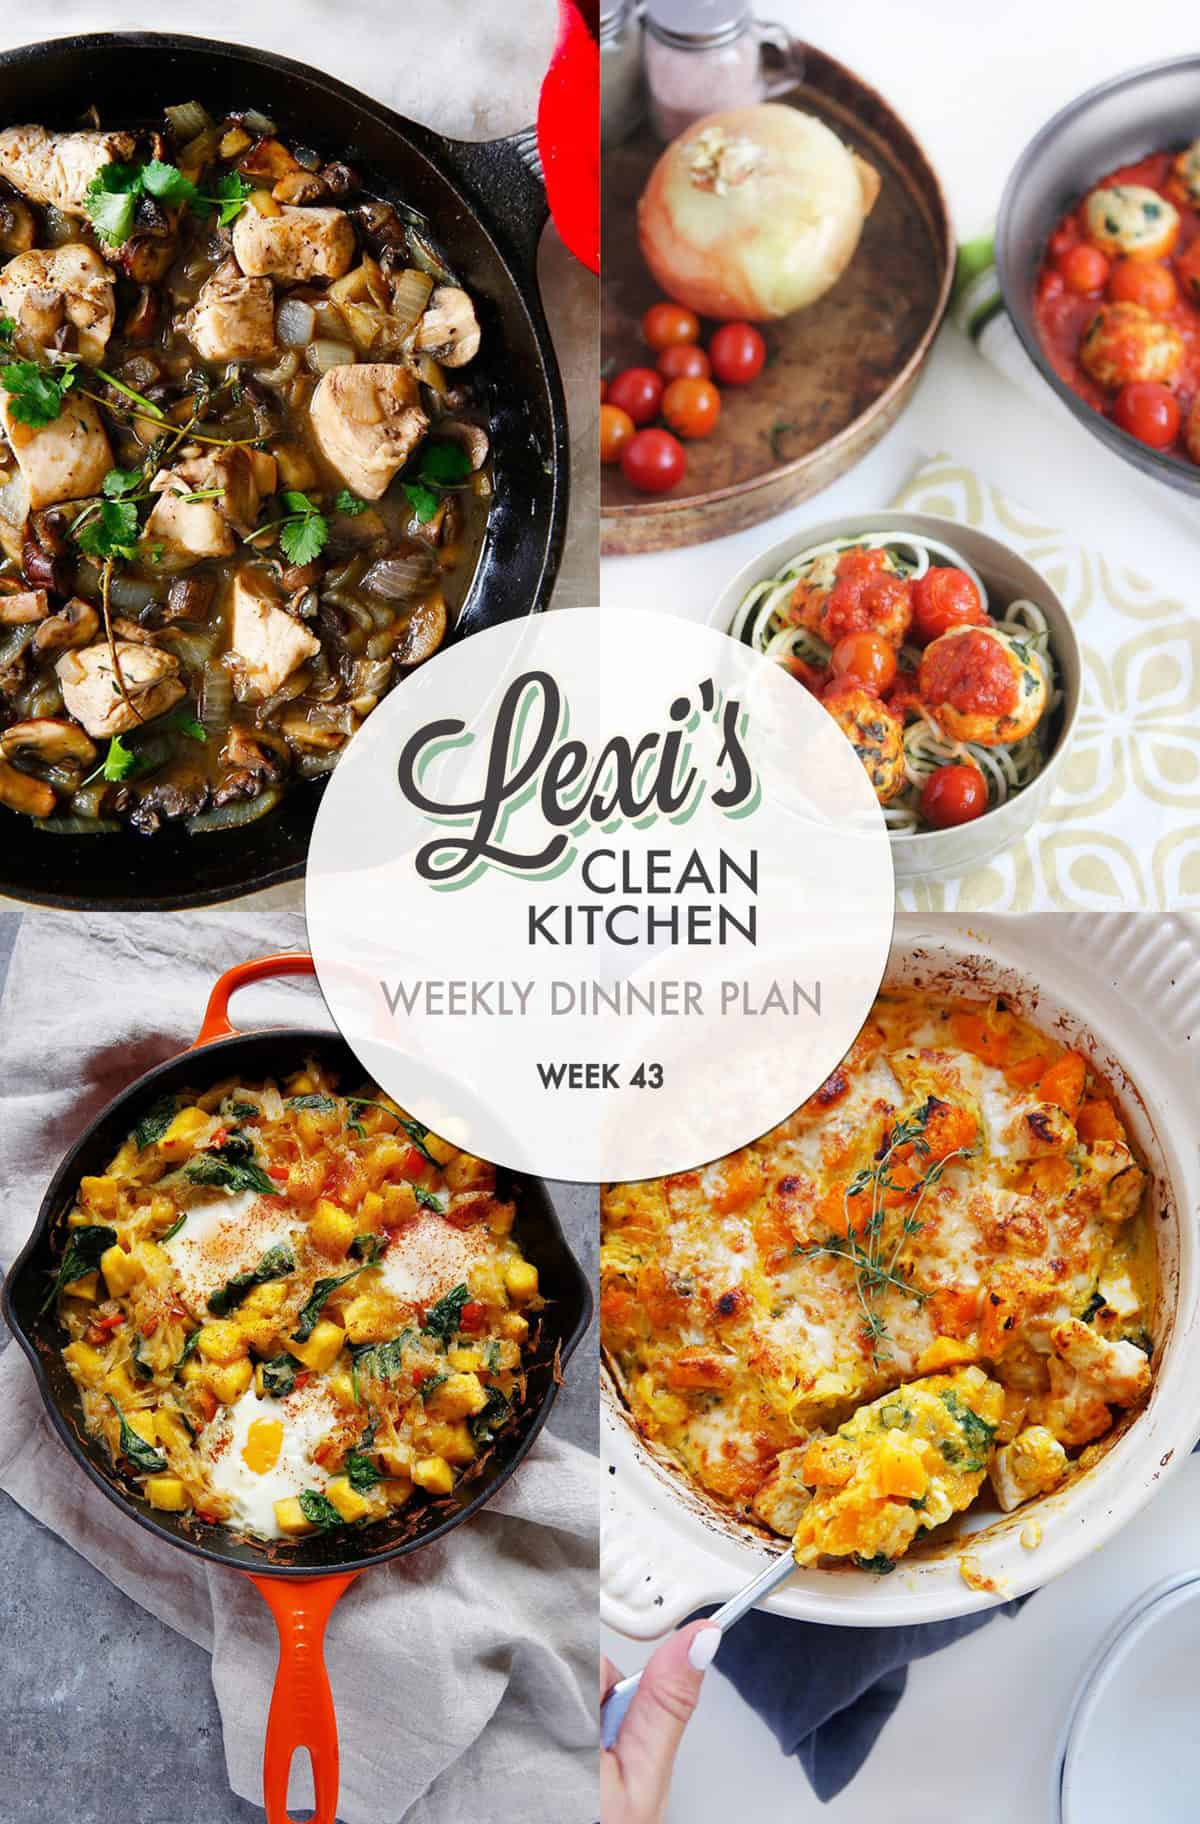 Meal Plan Graphic Week 43 | Lexi's Clean Kitchen